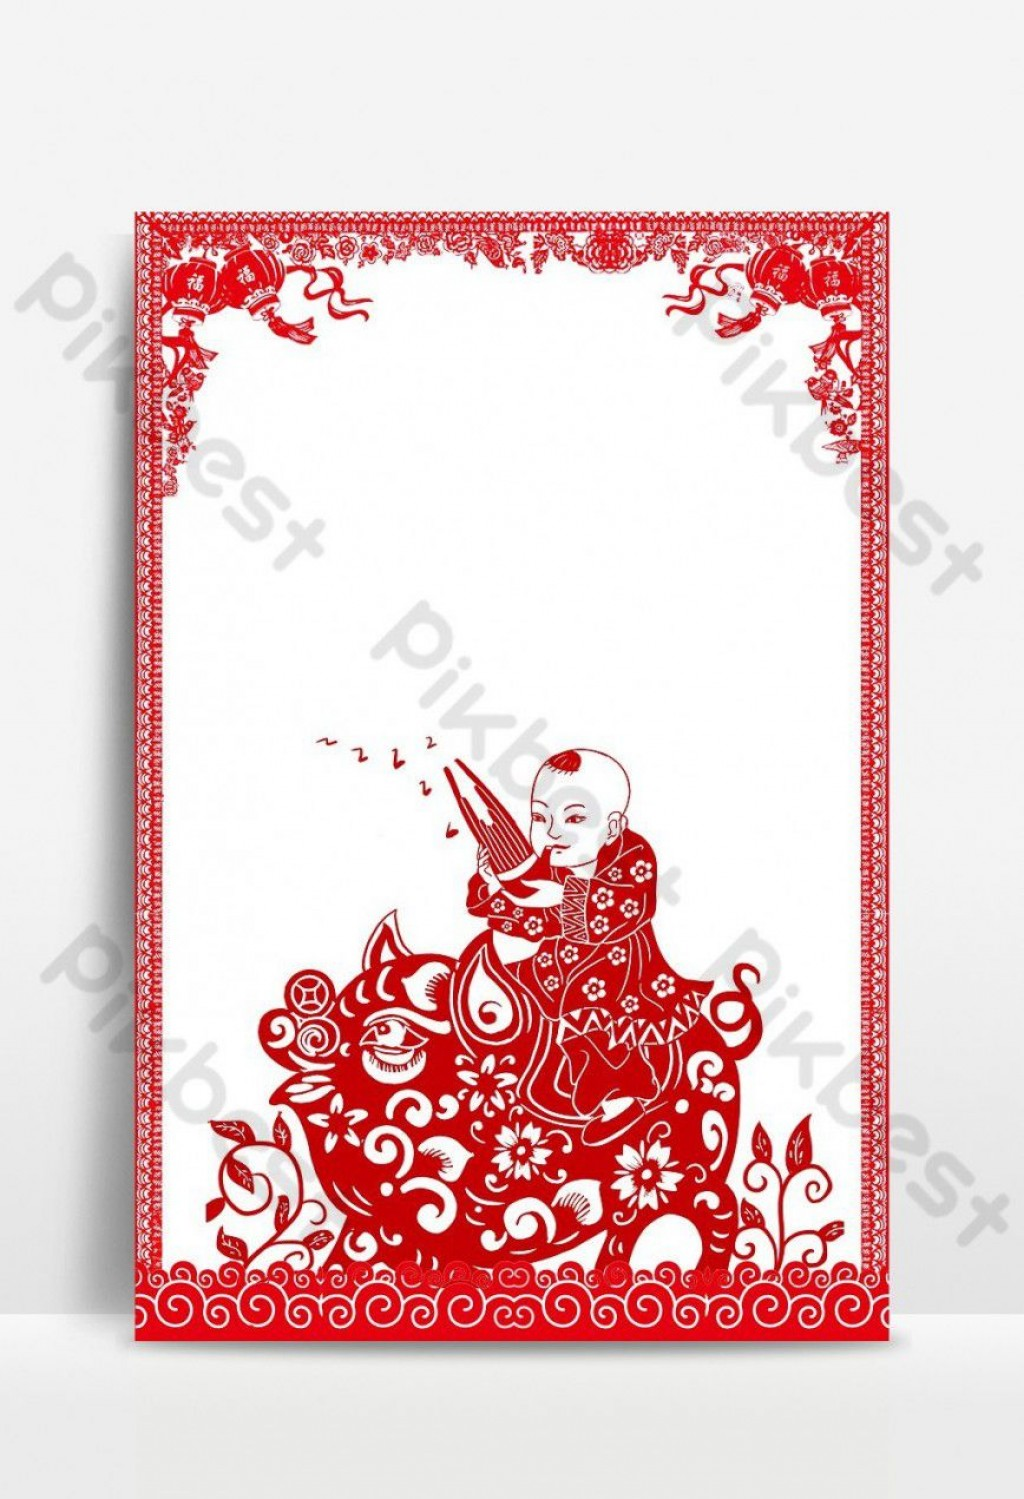 002 Shocking Chinese Paper Cut Template Highest Quality Large